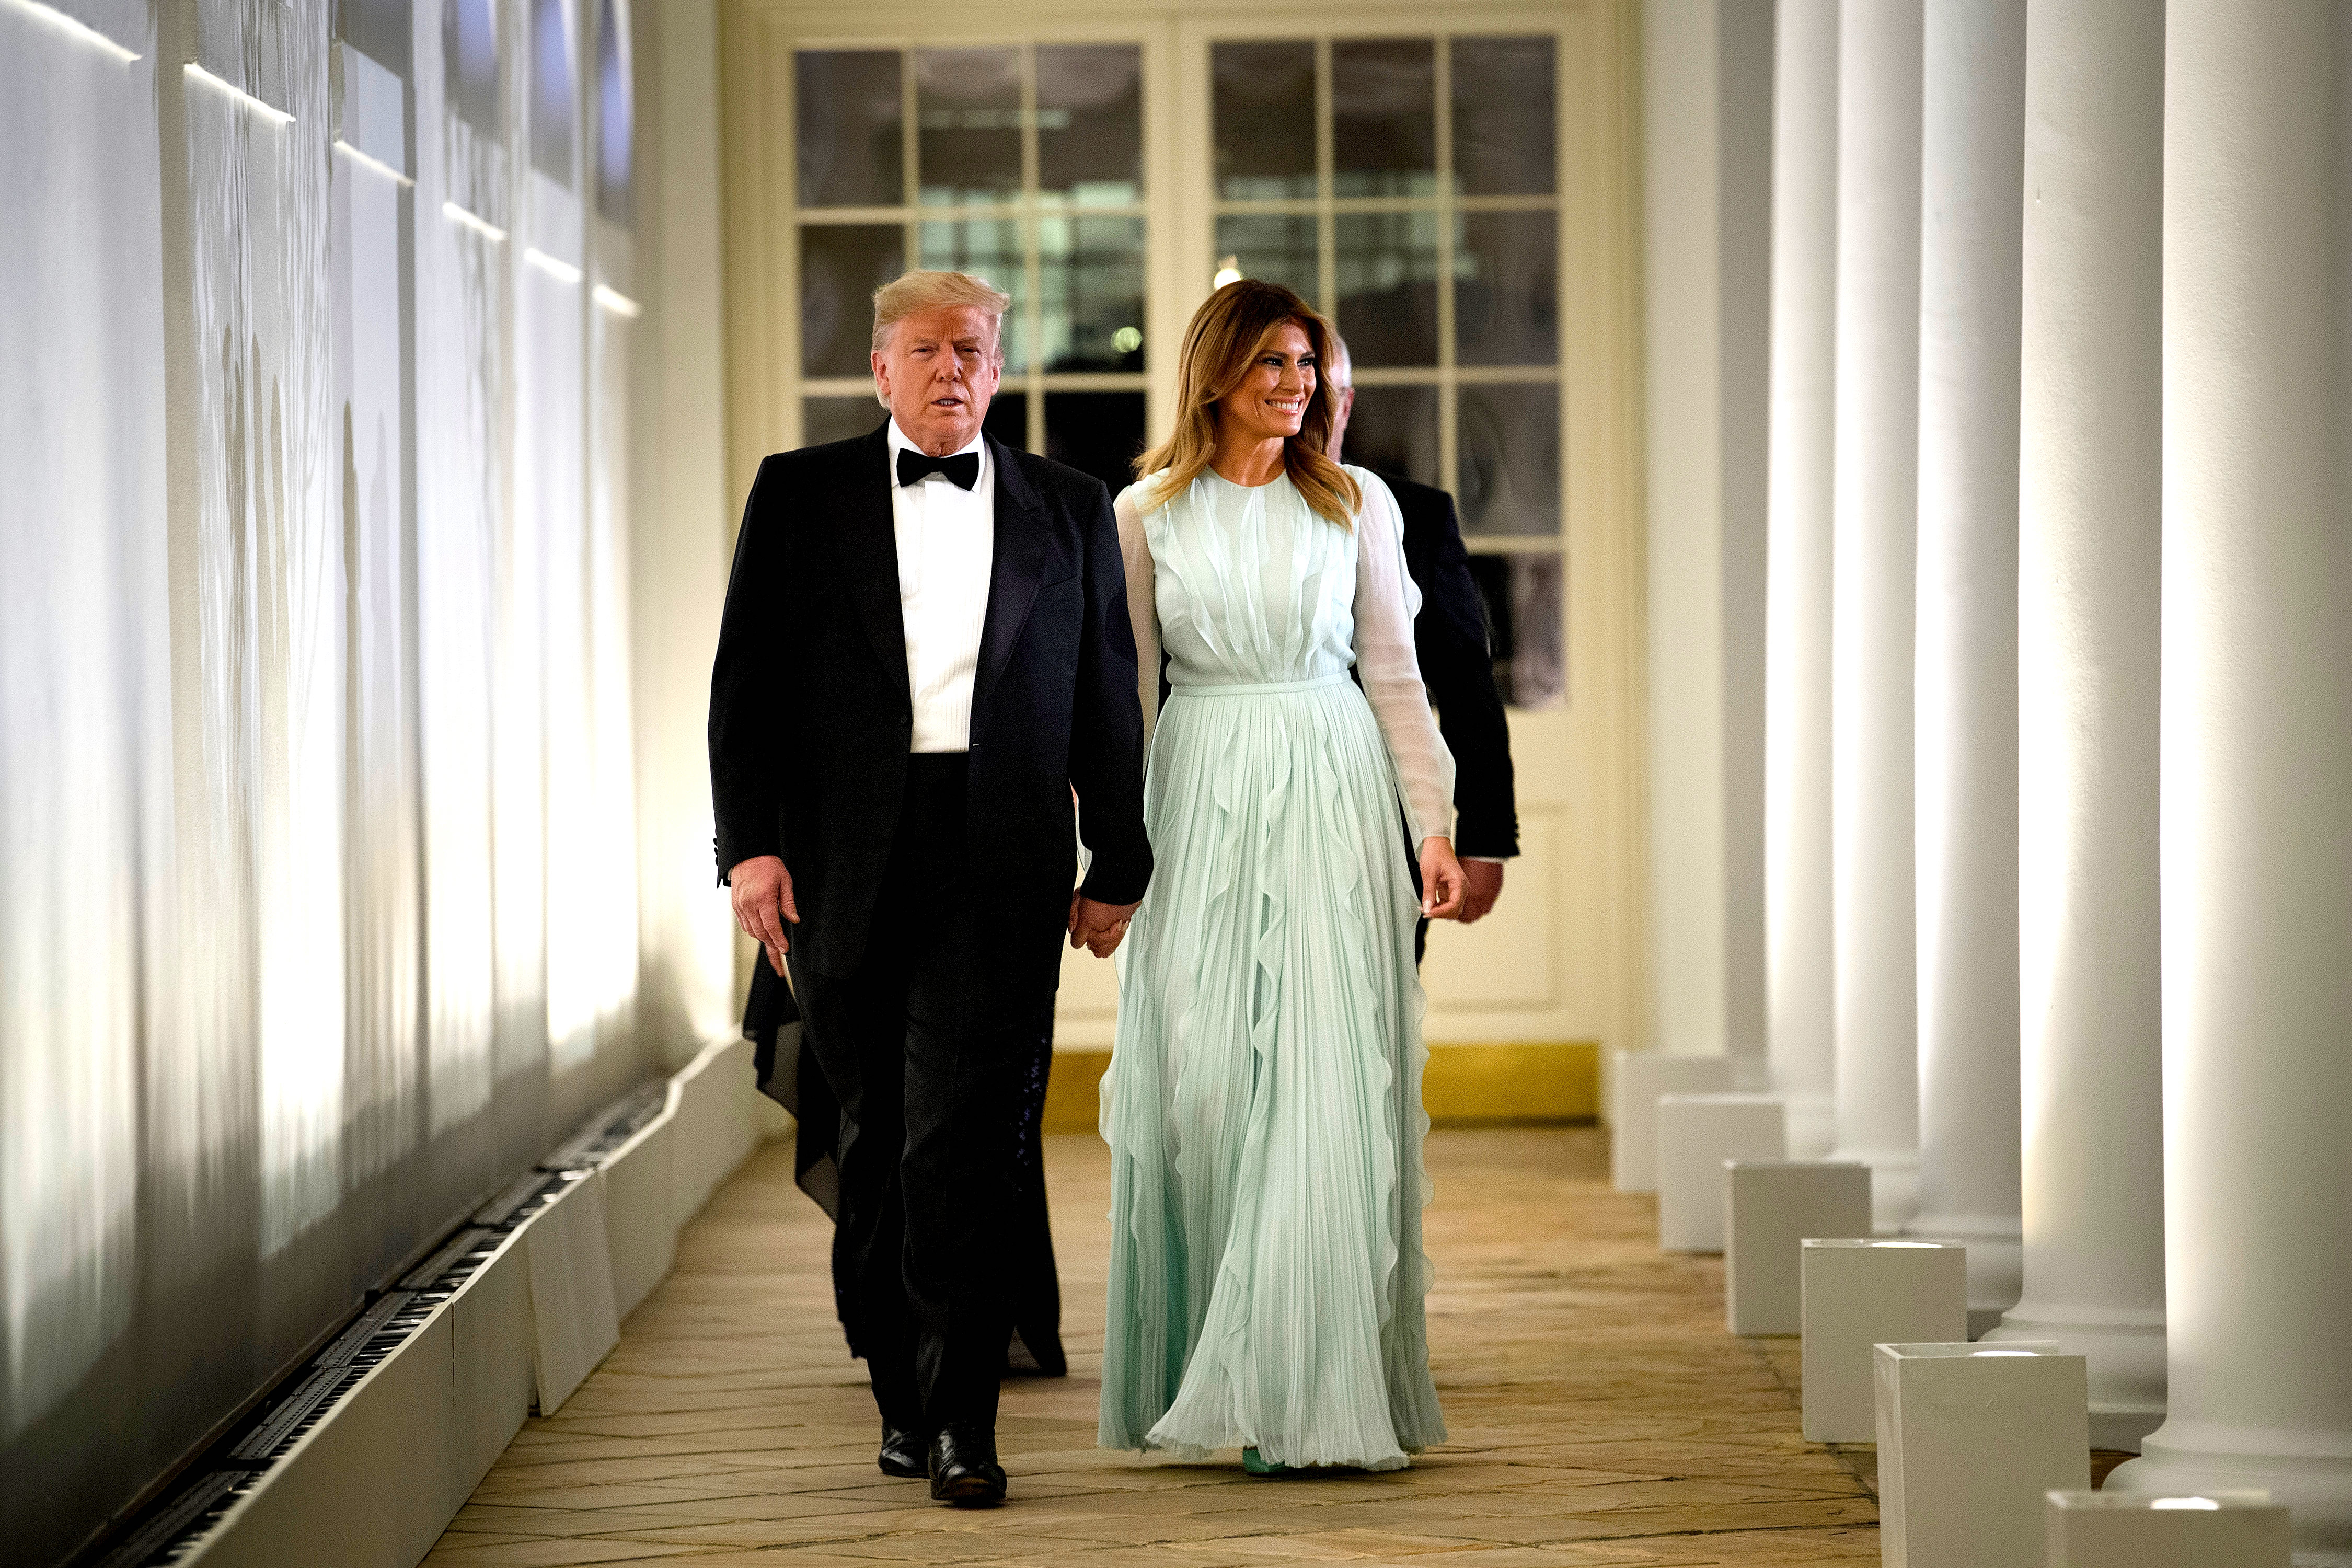 Trump and Melania at state dinner